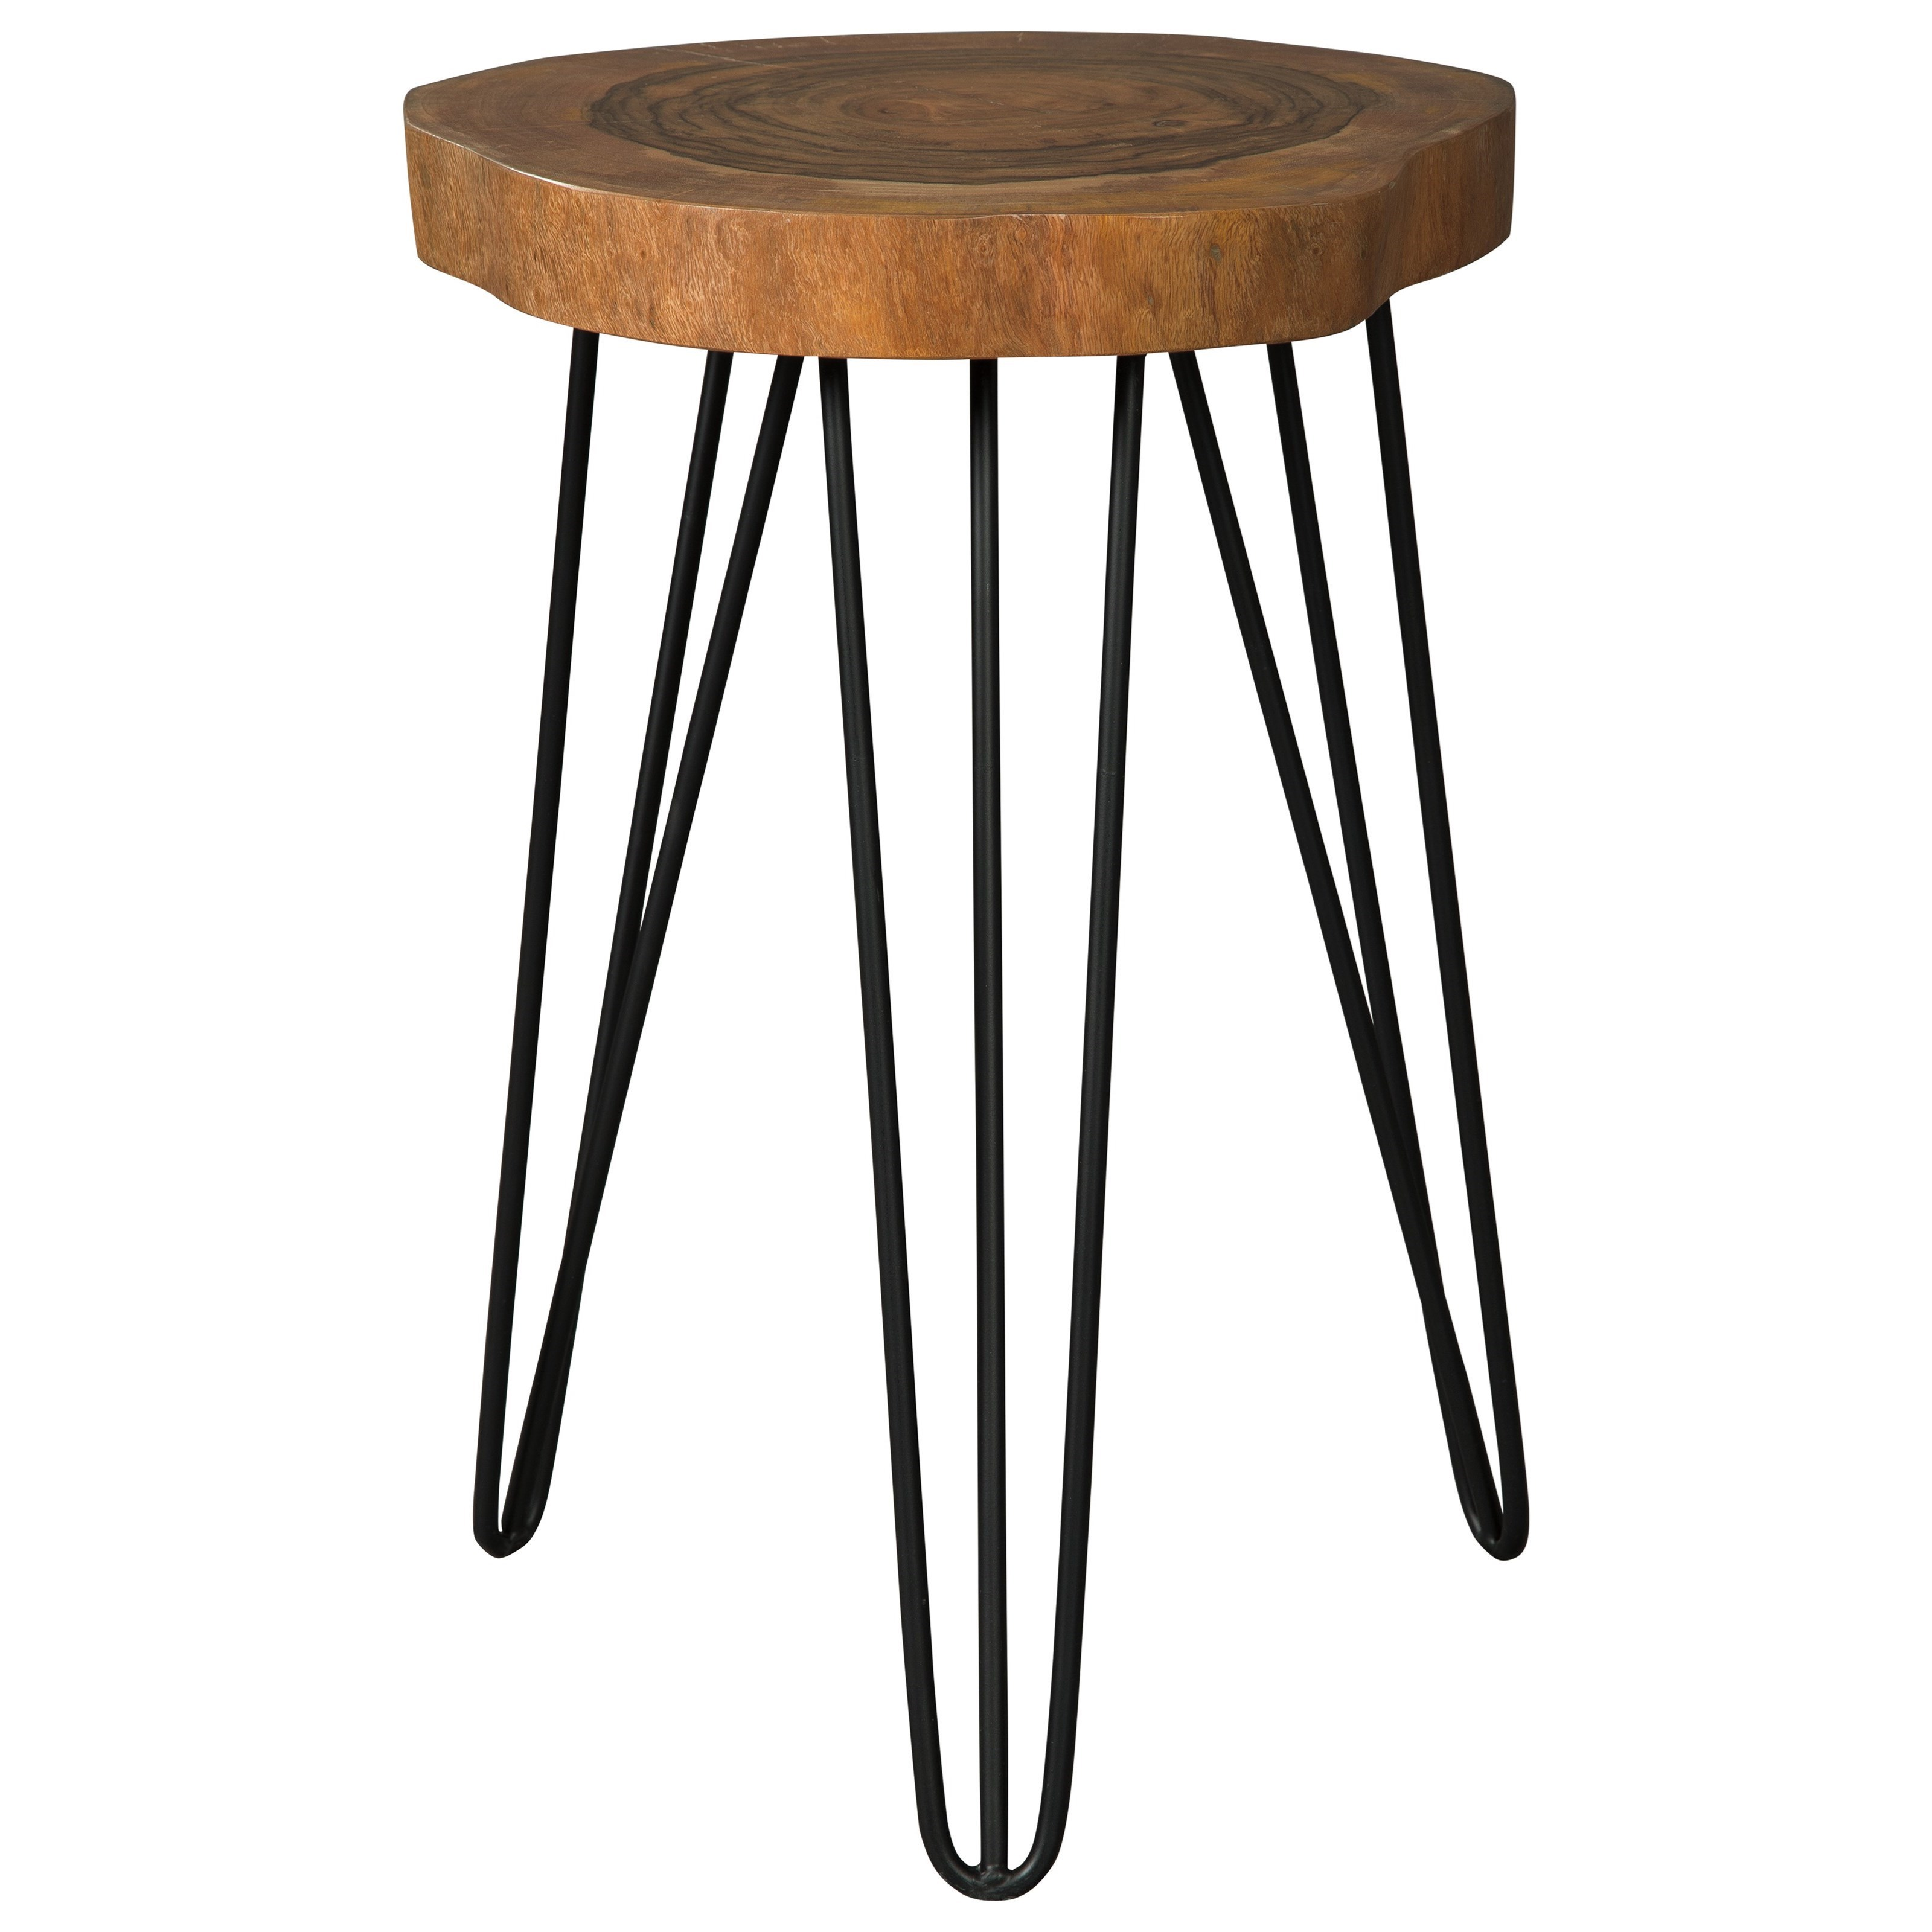 Eversboro Accent Table by Ashley (Signature Design) at Johnny Janosik